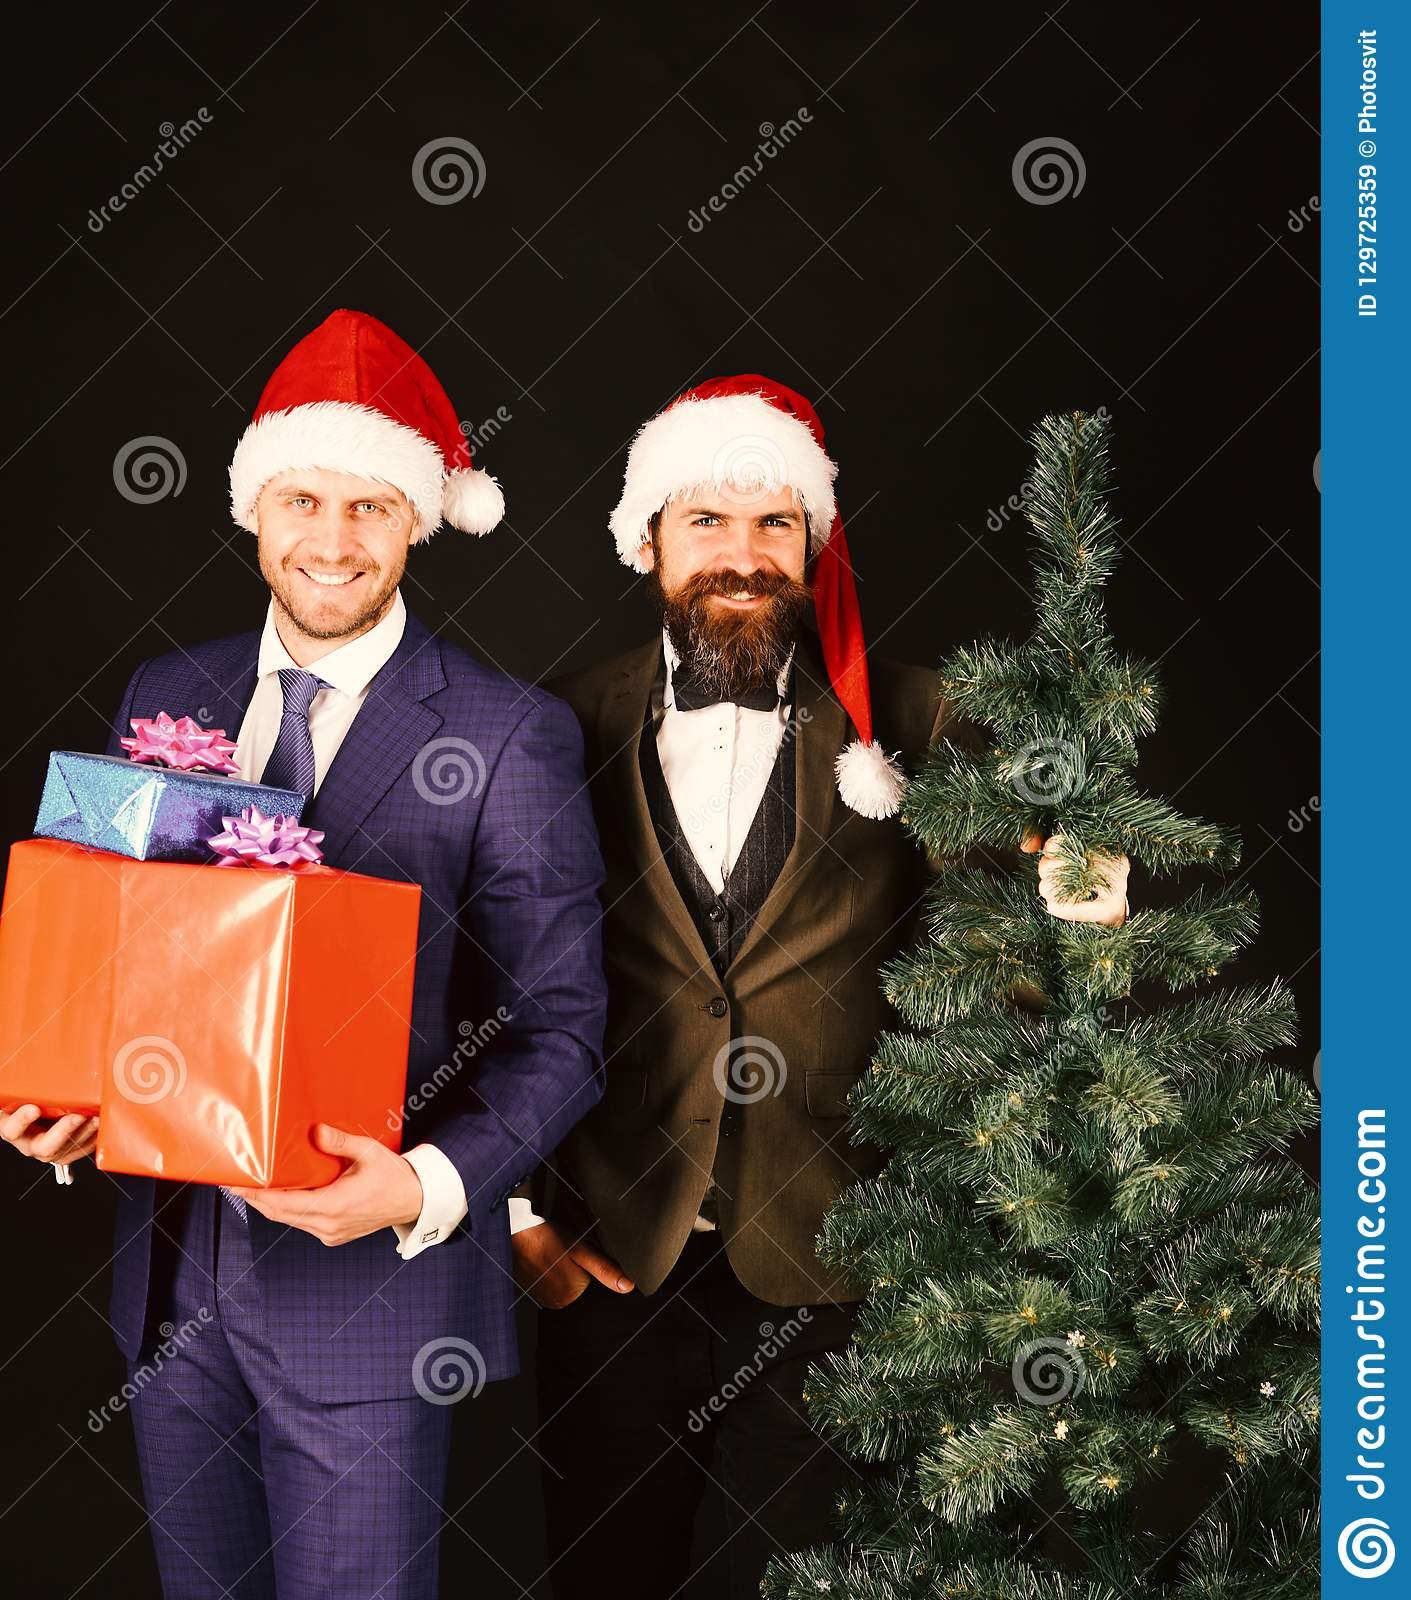 Managers with beards get ready for Christmas. Men in suits